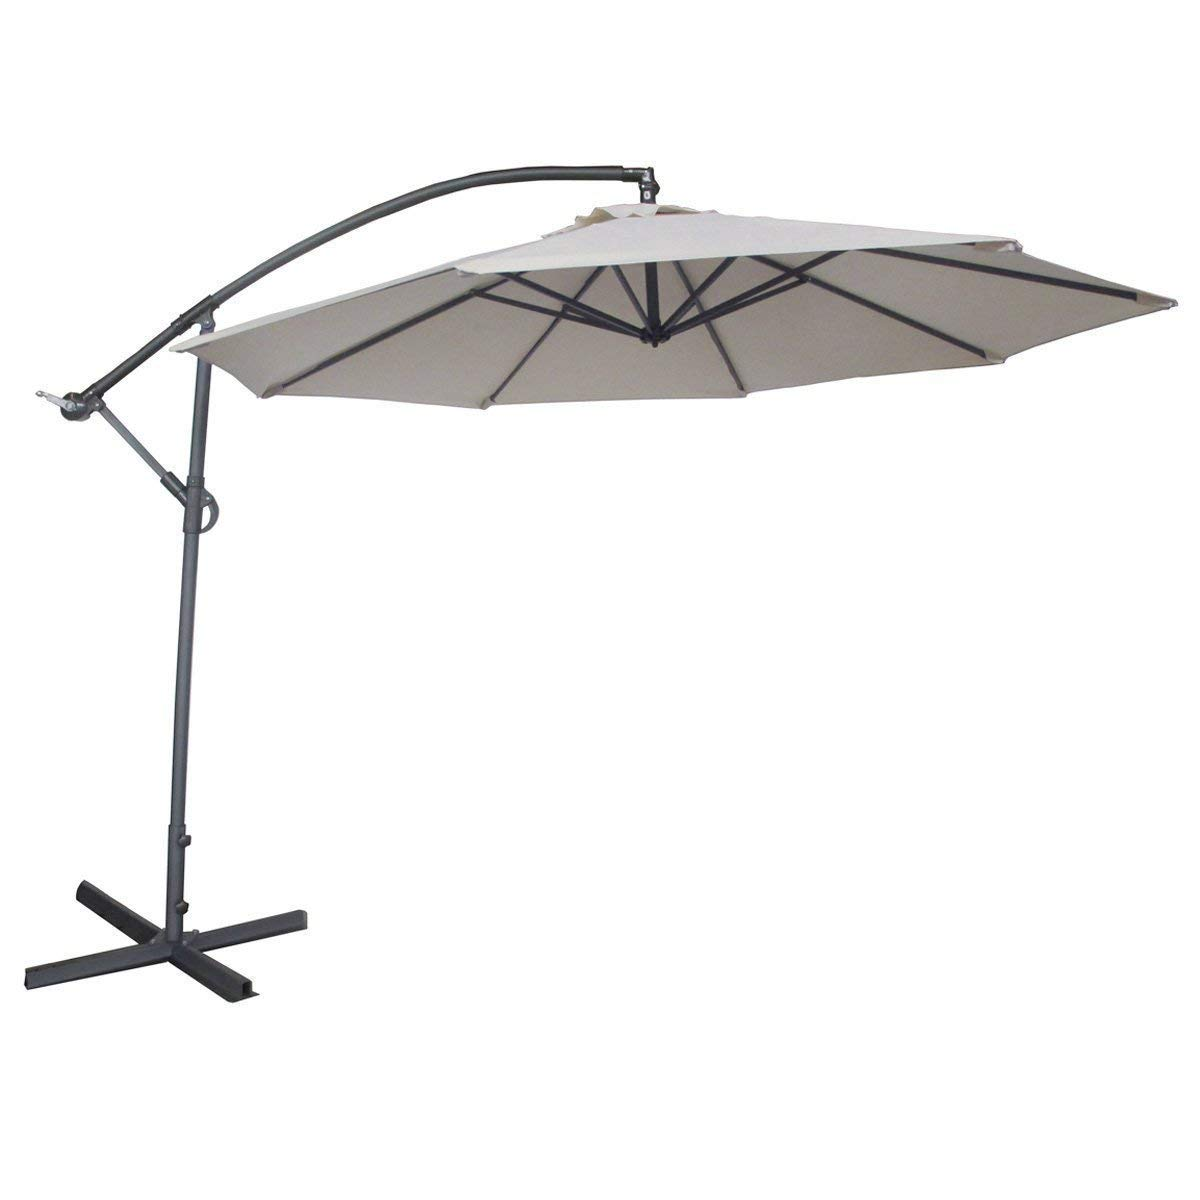 Abba Patio 10ft Offset Hanging Patio Umbrella with Cross Base, Ivory